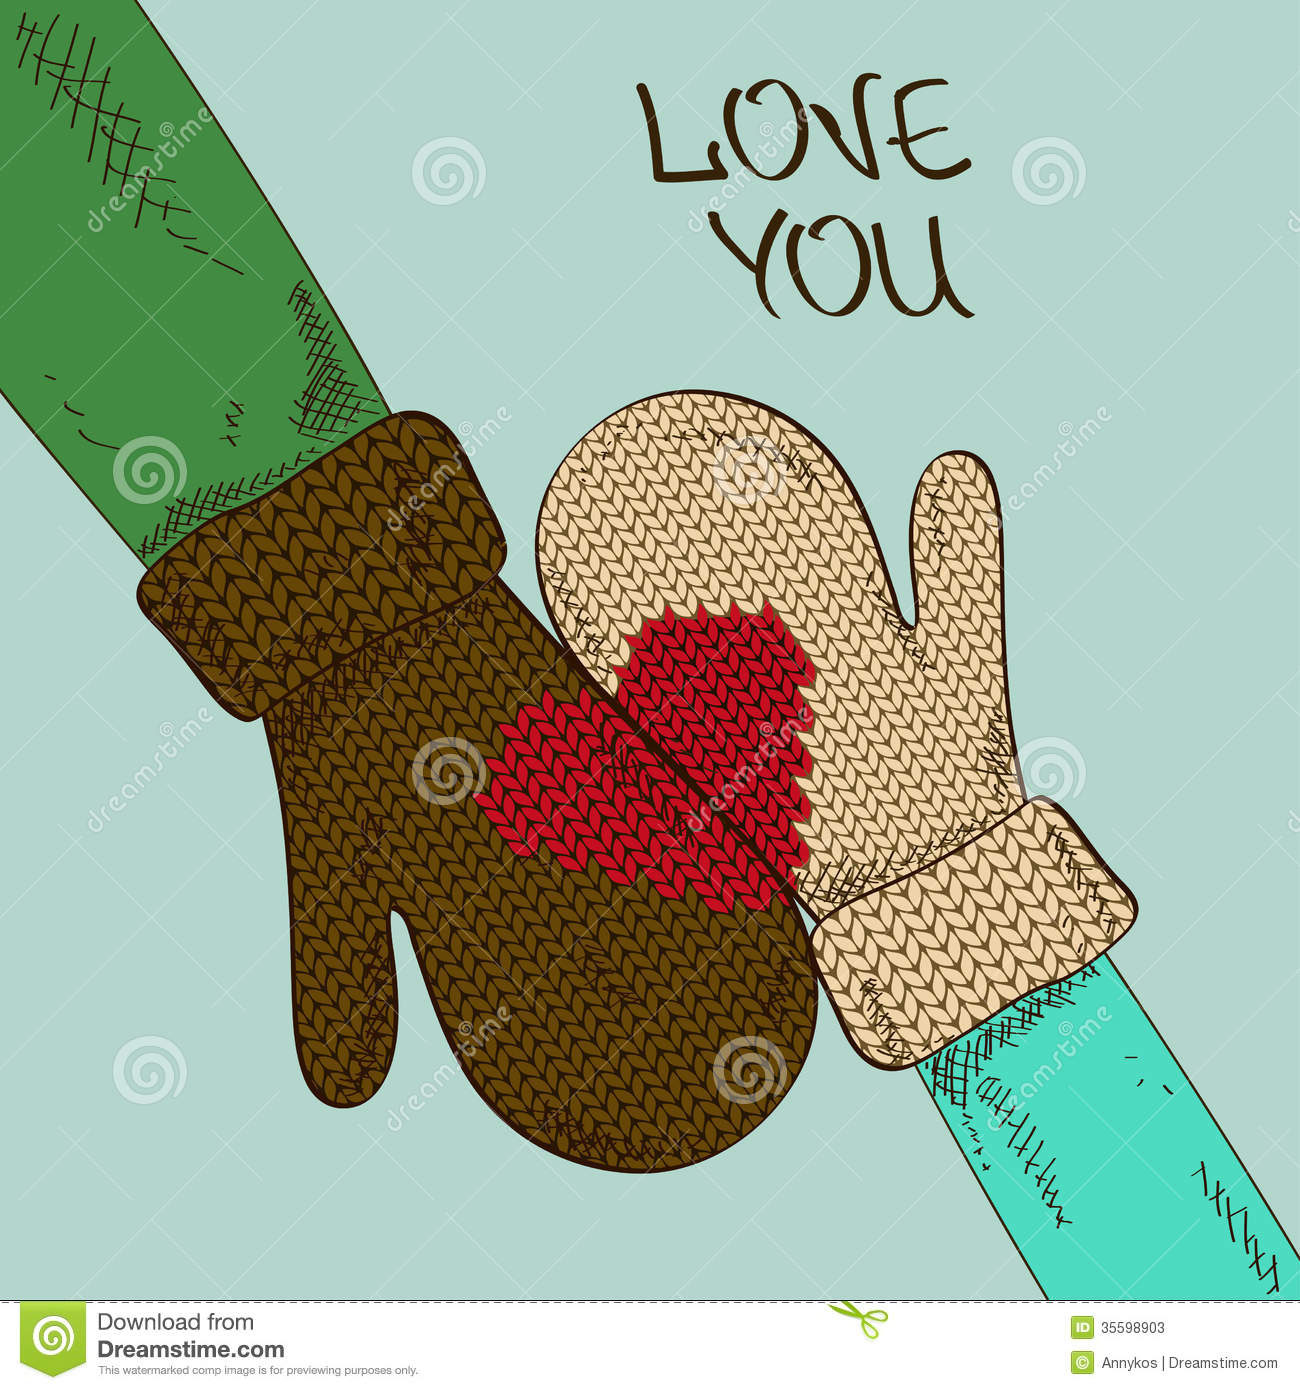 Illustration With Hands Of Couple In Mittens Stock Photos - Image: 35598903